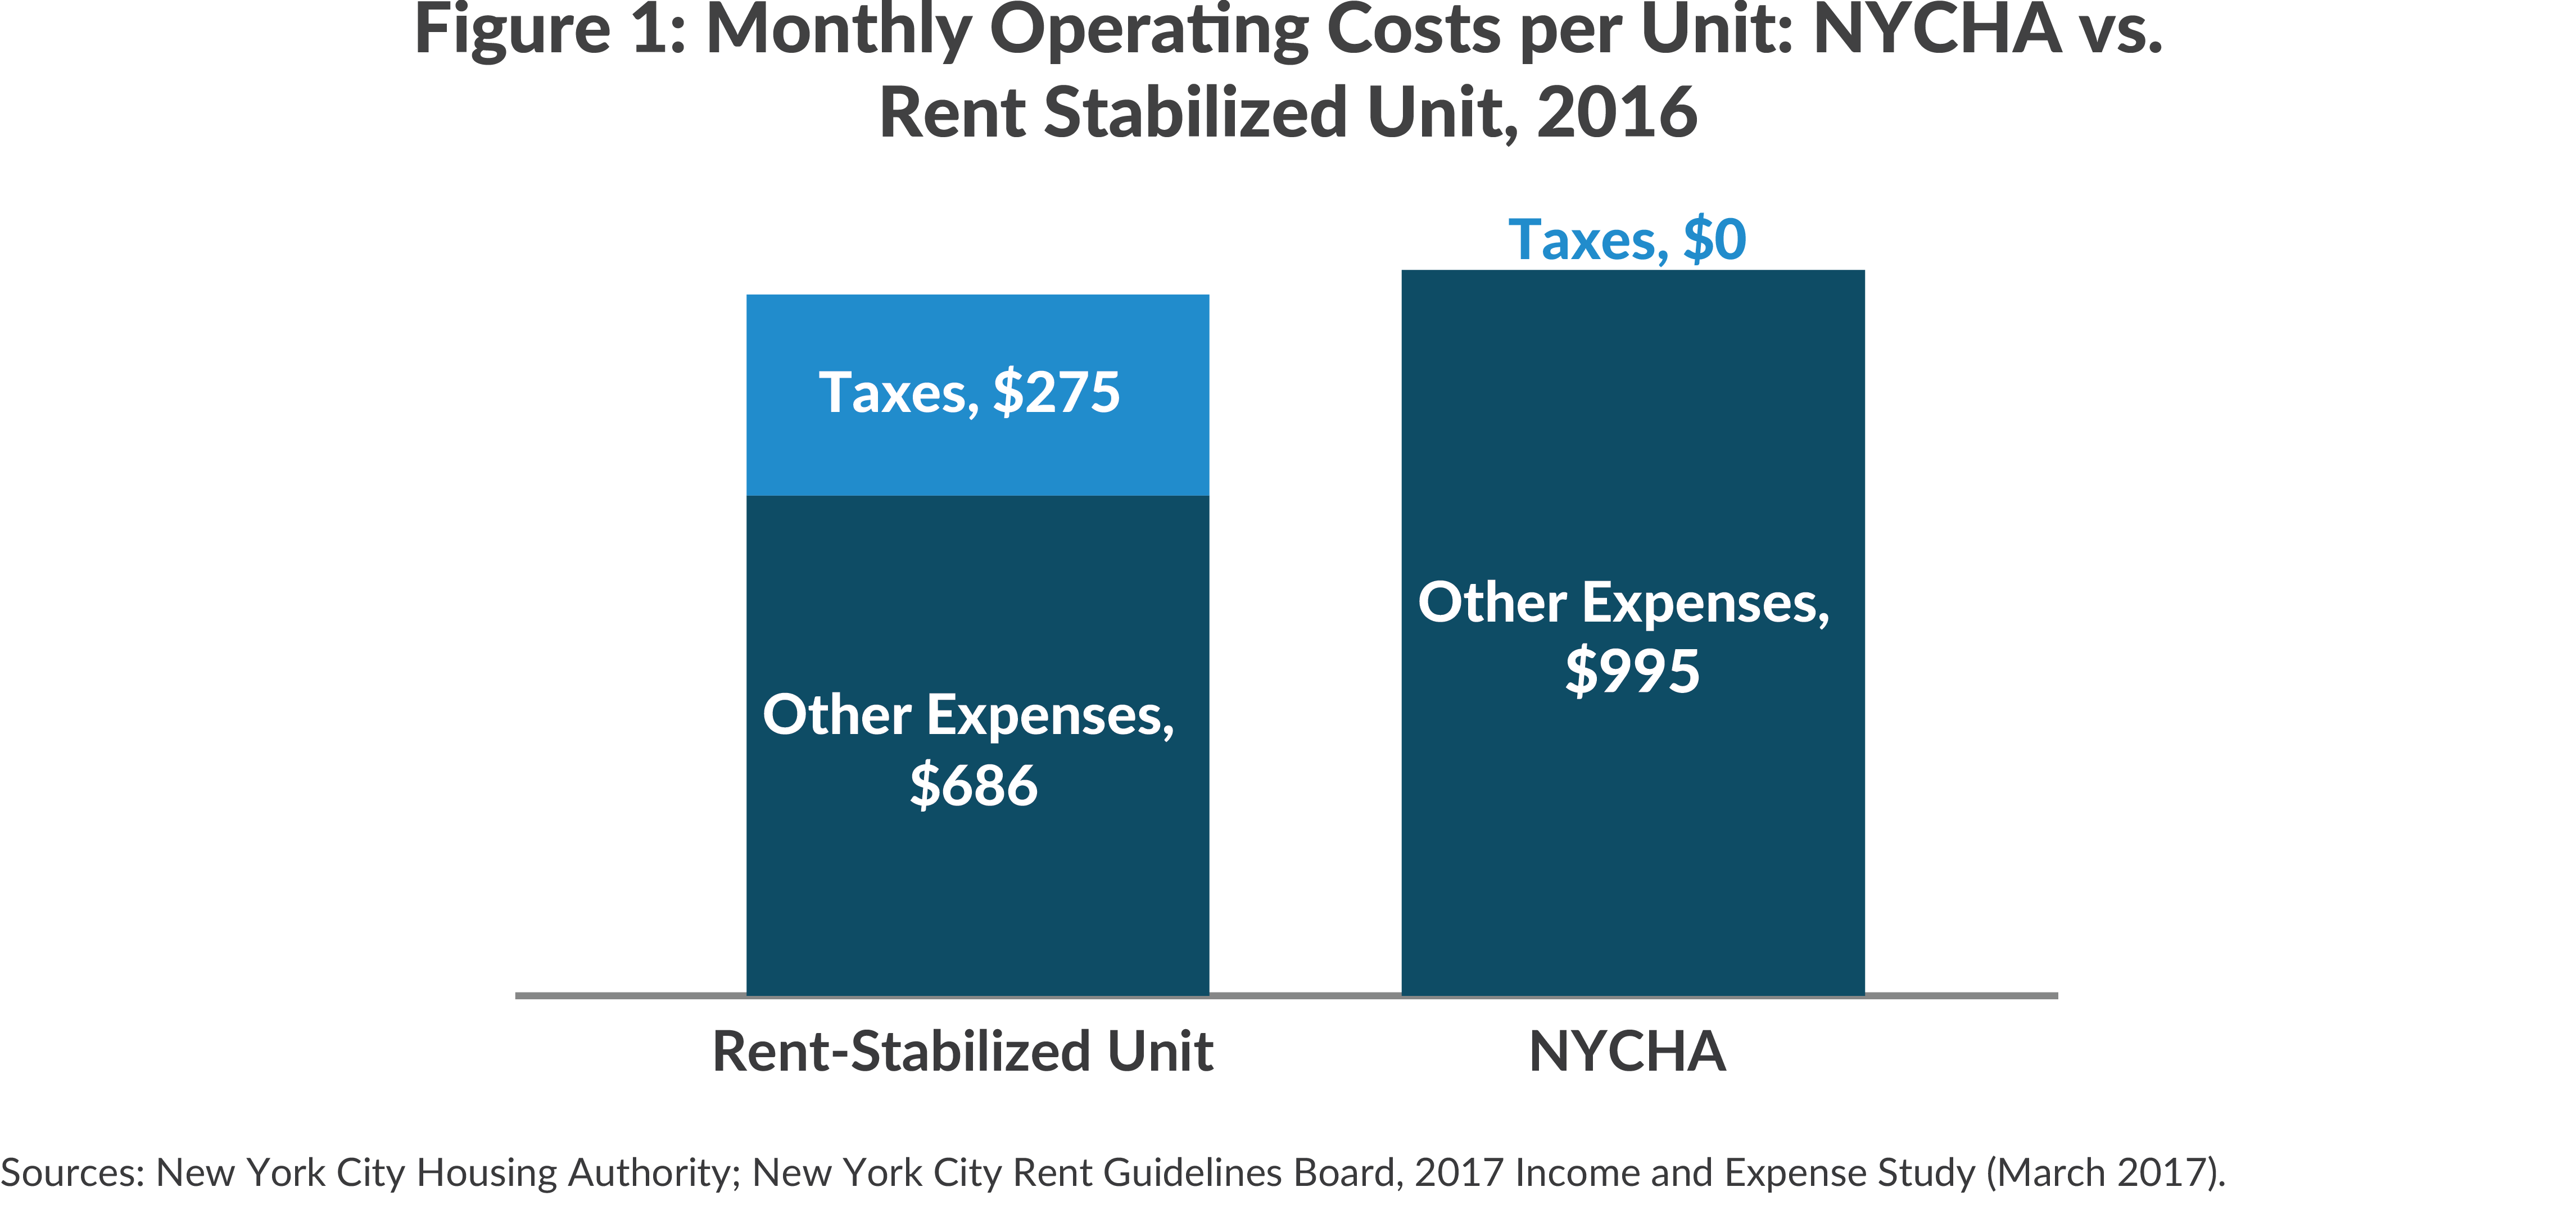 Figure 1: Monthly Operating Costs per Unit: NYCHA vs. Rent Stabilized Unit, 2016